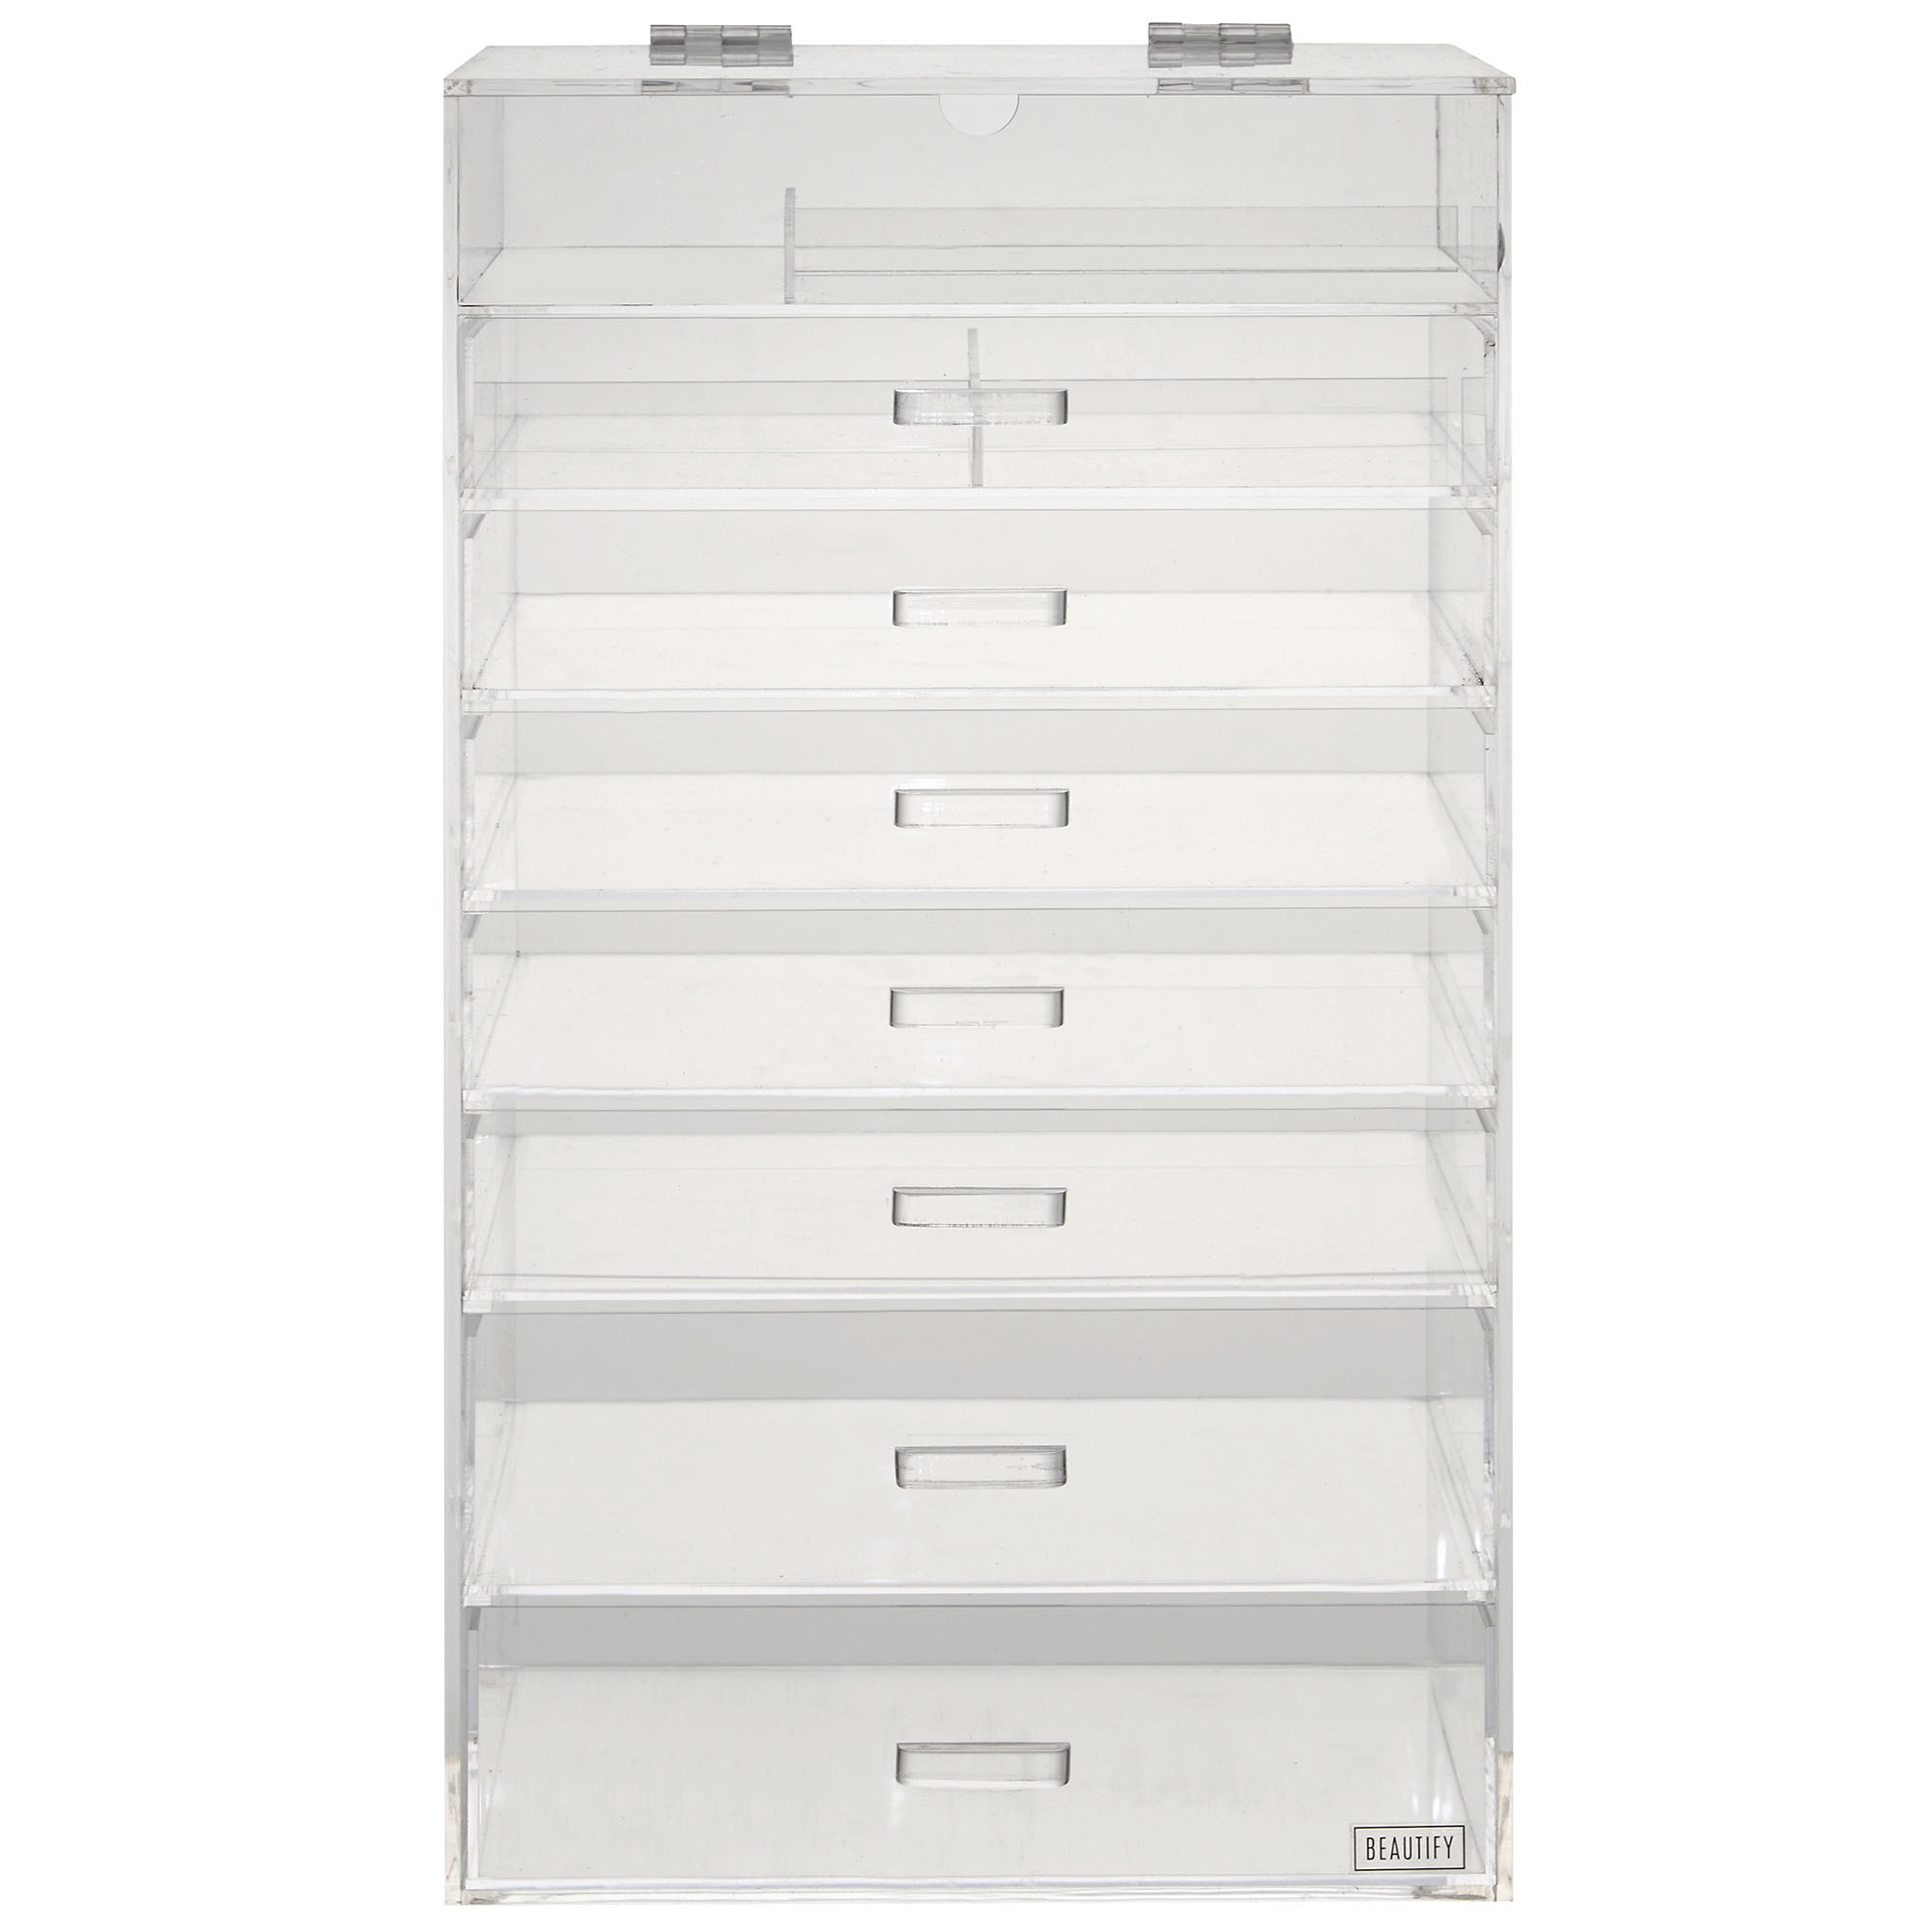 Beautify 8 Tier Acrylic Make Up Organiser Clear Cosmetics Storage